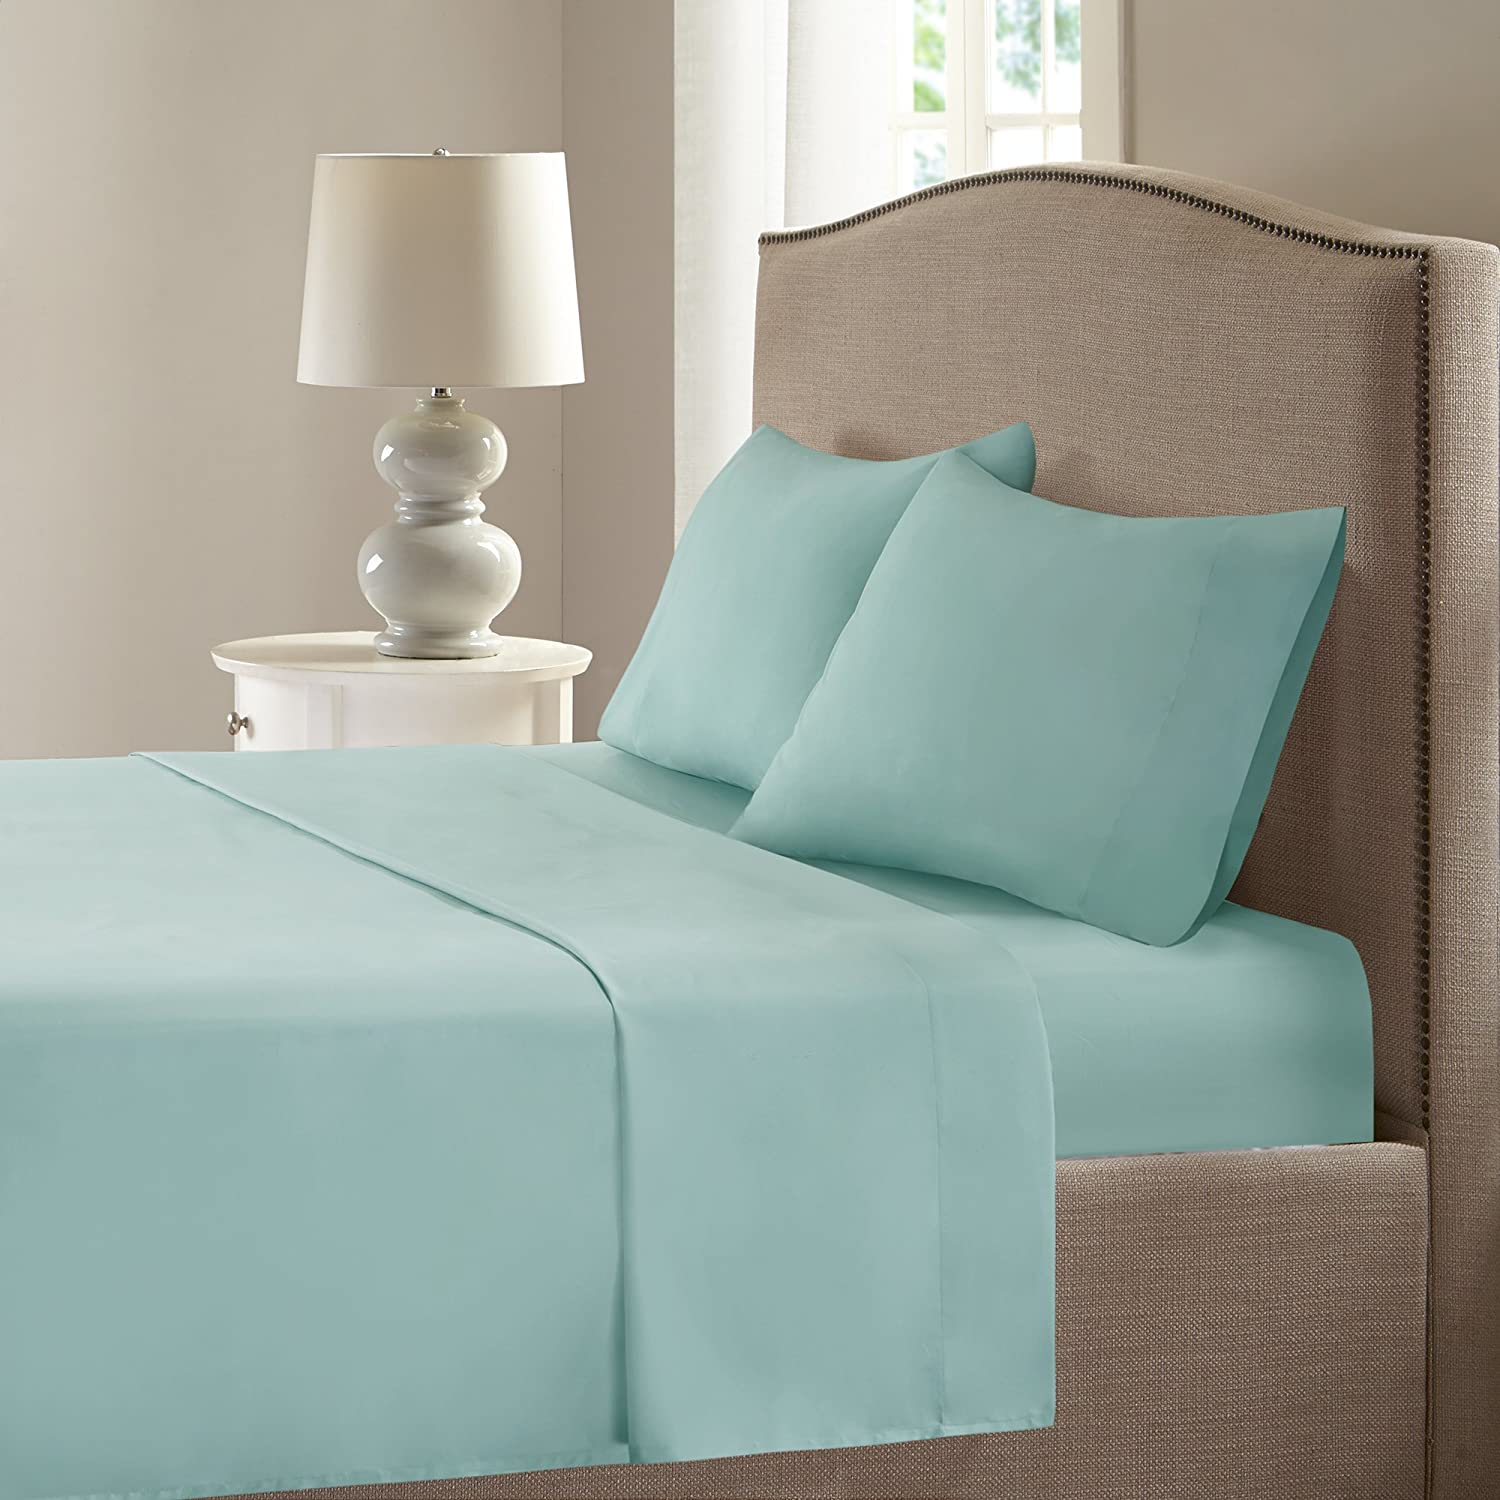 Comfort Spaces Coolmax Moisture Wicking 3 Piece Set Smart Bed Cooling Sheets for Night Sweats, Twin XL, Aqua